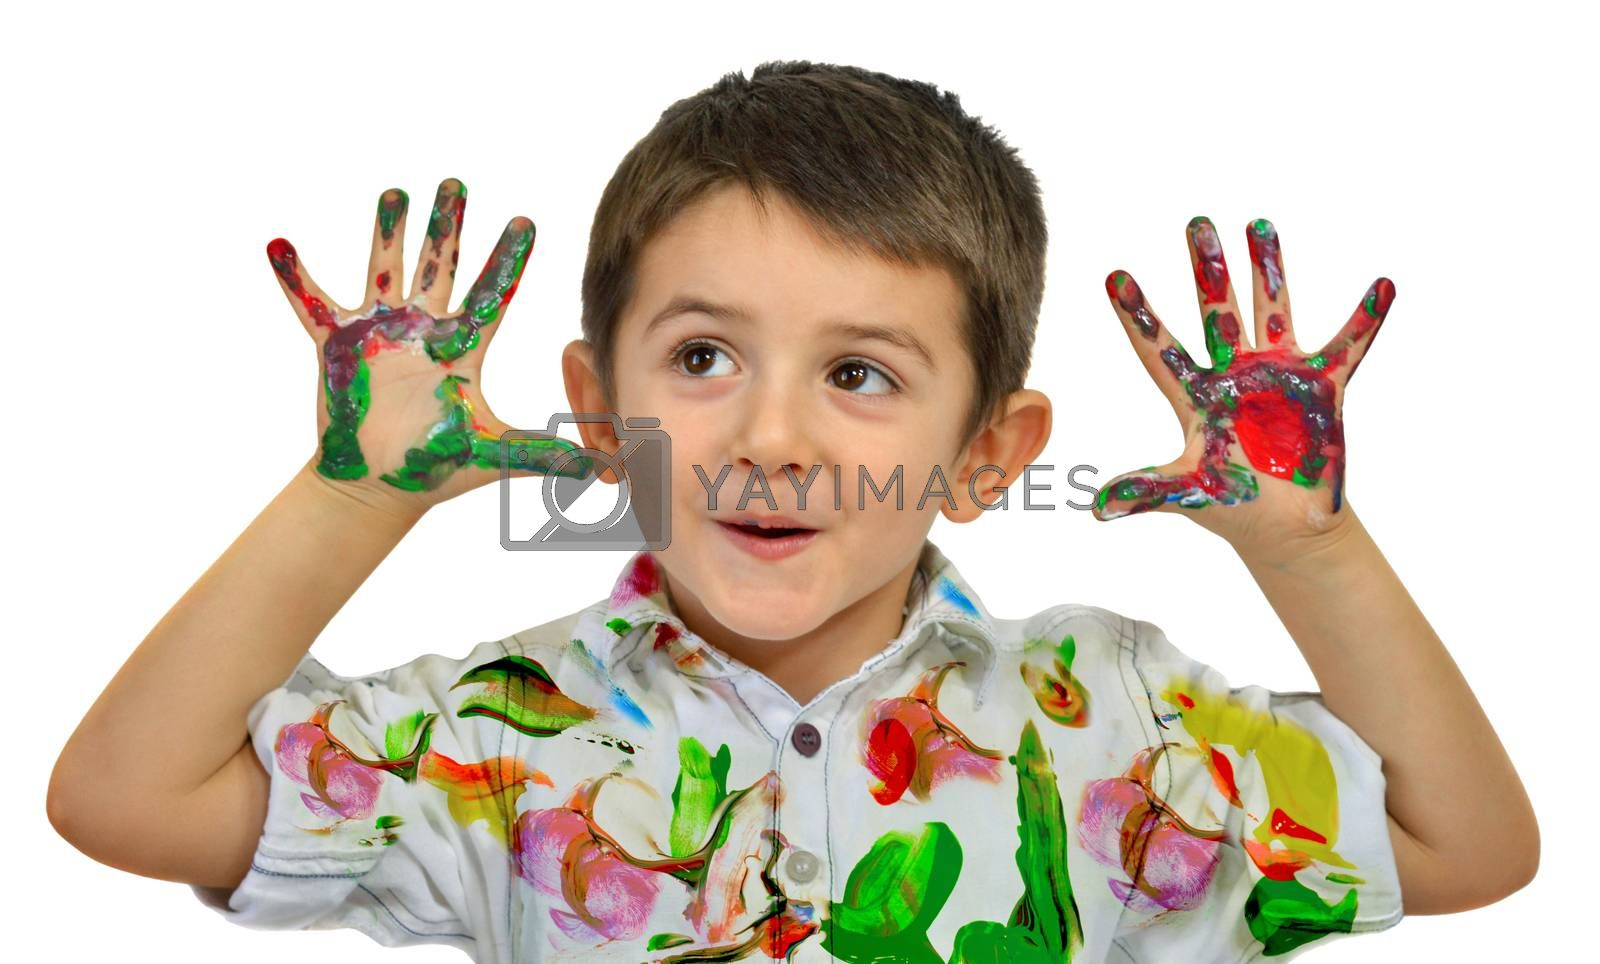 Little boy painting with hands with different color paint on his palms